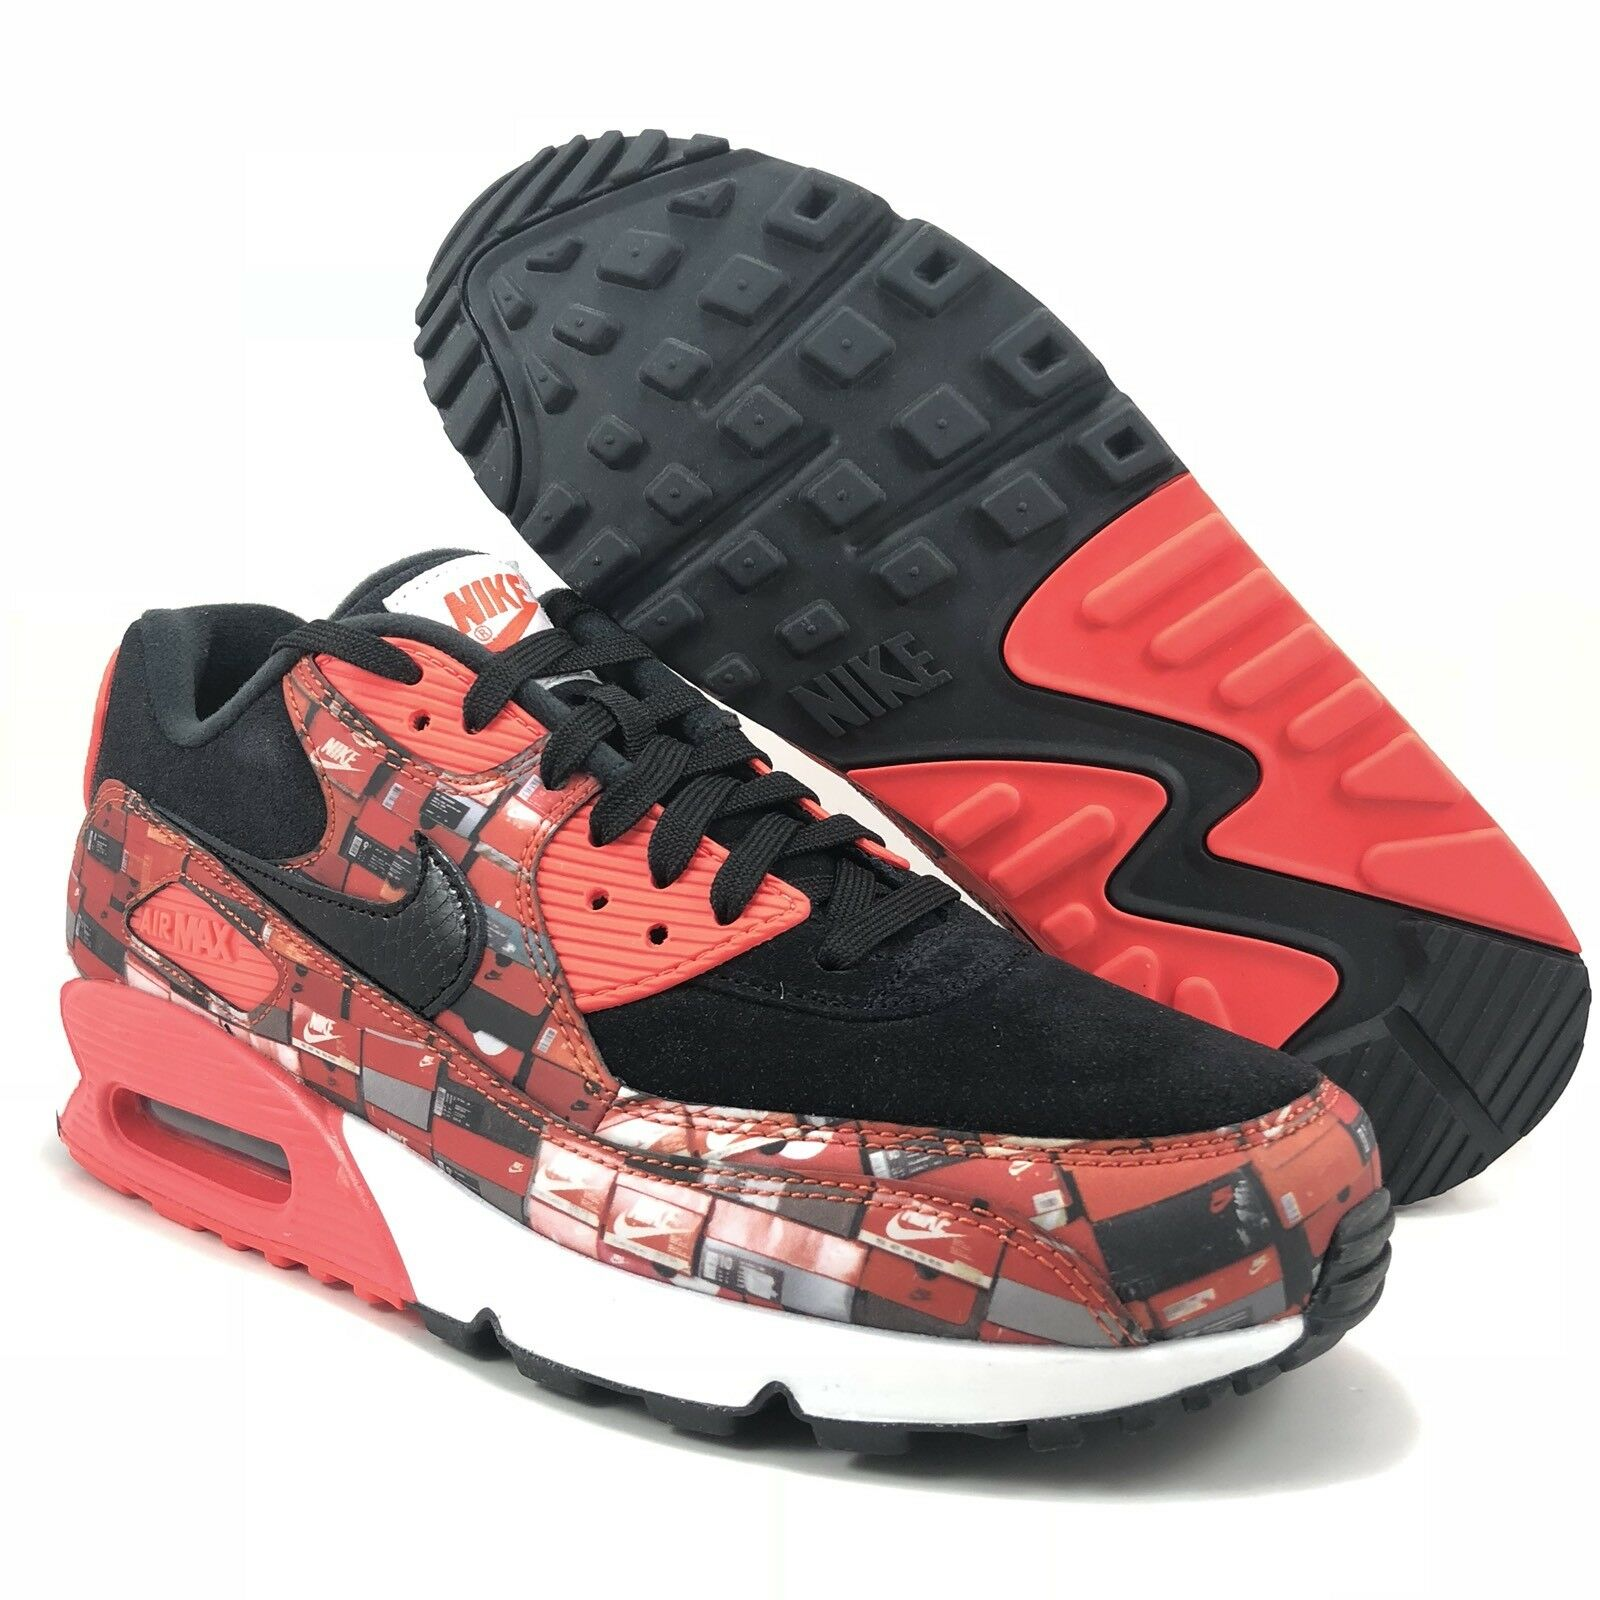 Nike Air Bright Max 90 Print Black Bright Air Crimson White Mens Size 9 (AQ0926 001) 1d2318